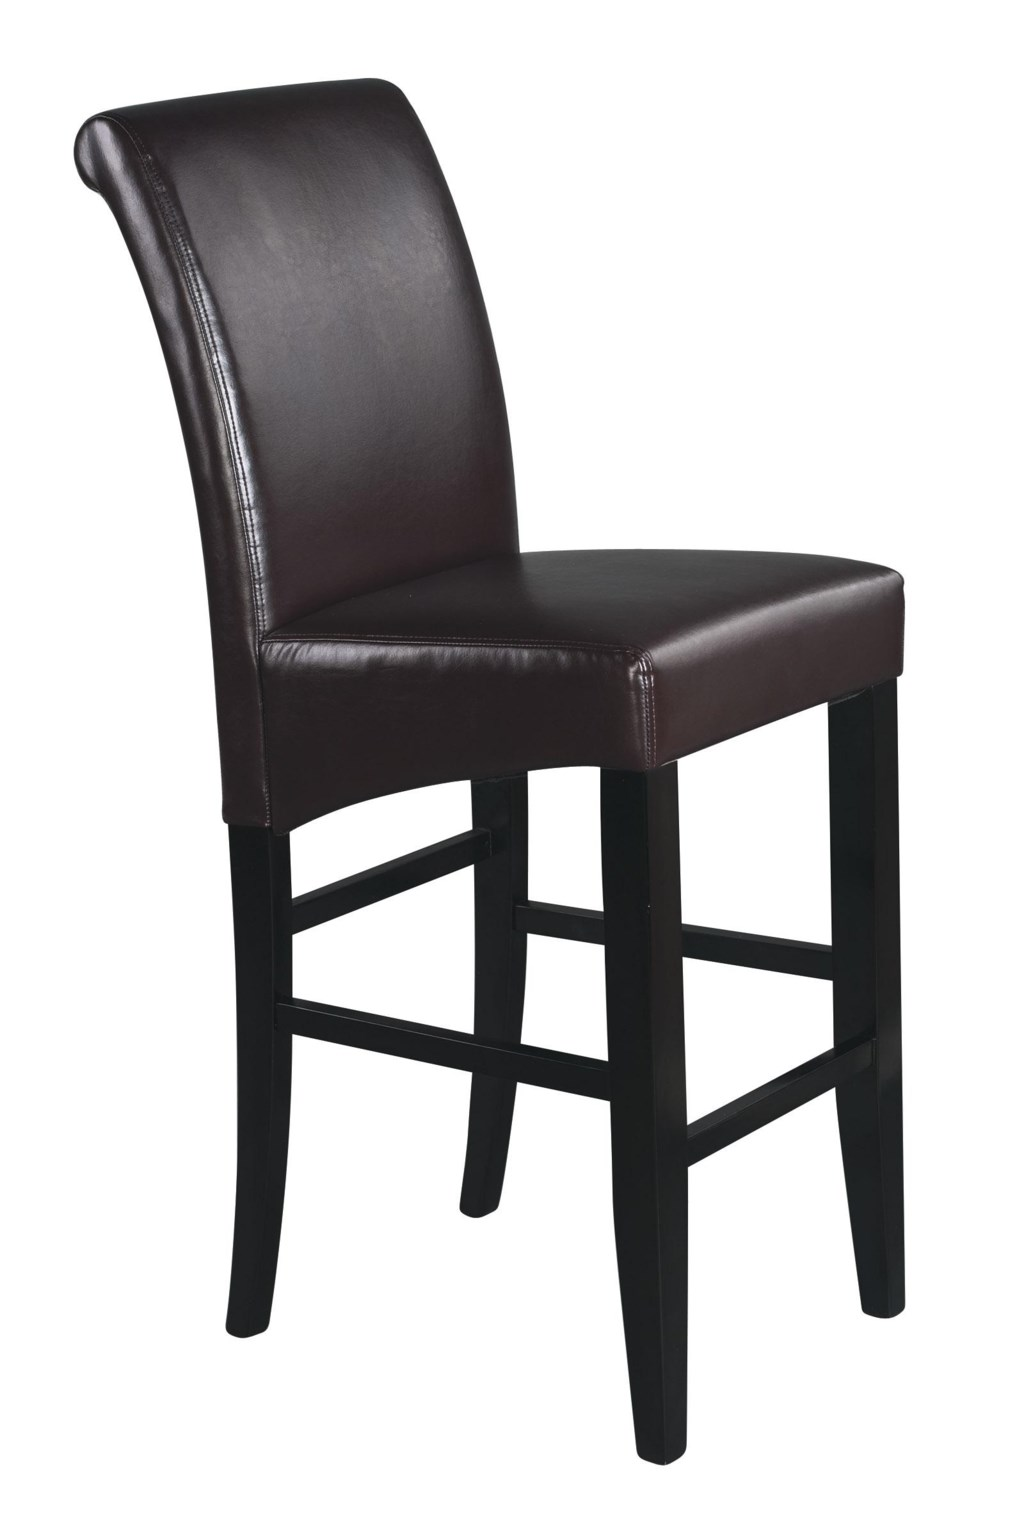 Office Star Parson Bar Stools 30 Inch Eco Leather Bar Stool